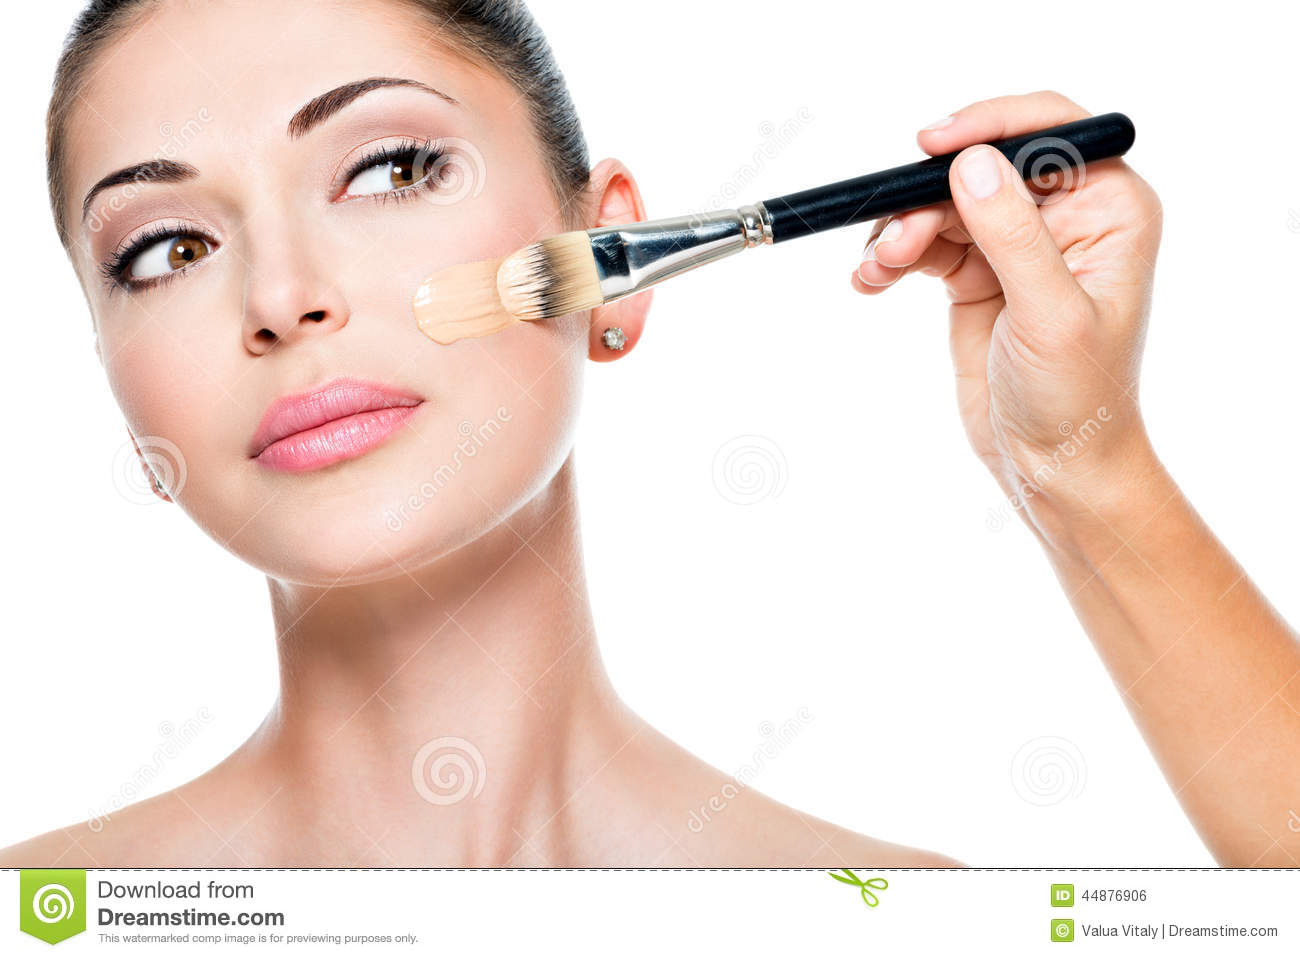 How to apply the tonal foundation on the face correctly: video and step-by-step instructions for applying the foundation with fingers, sponge and brush to mask skin imperfections and wrinkles 42